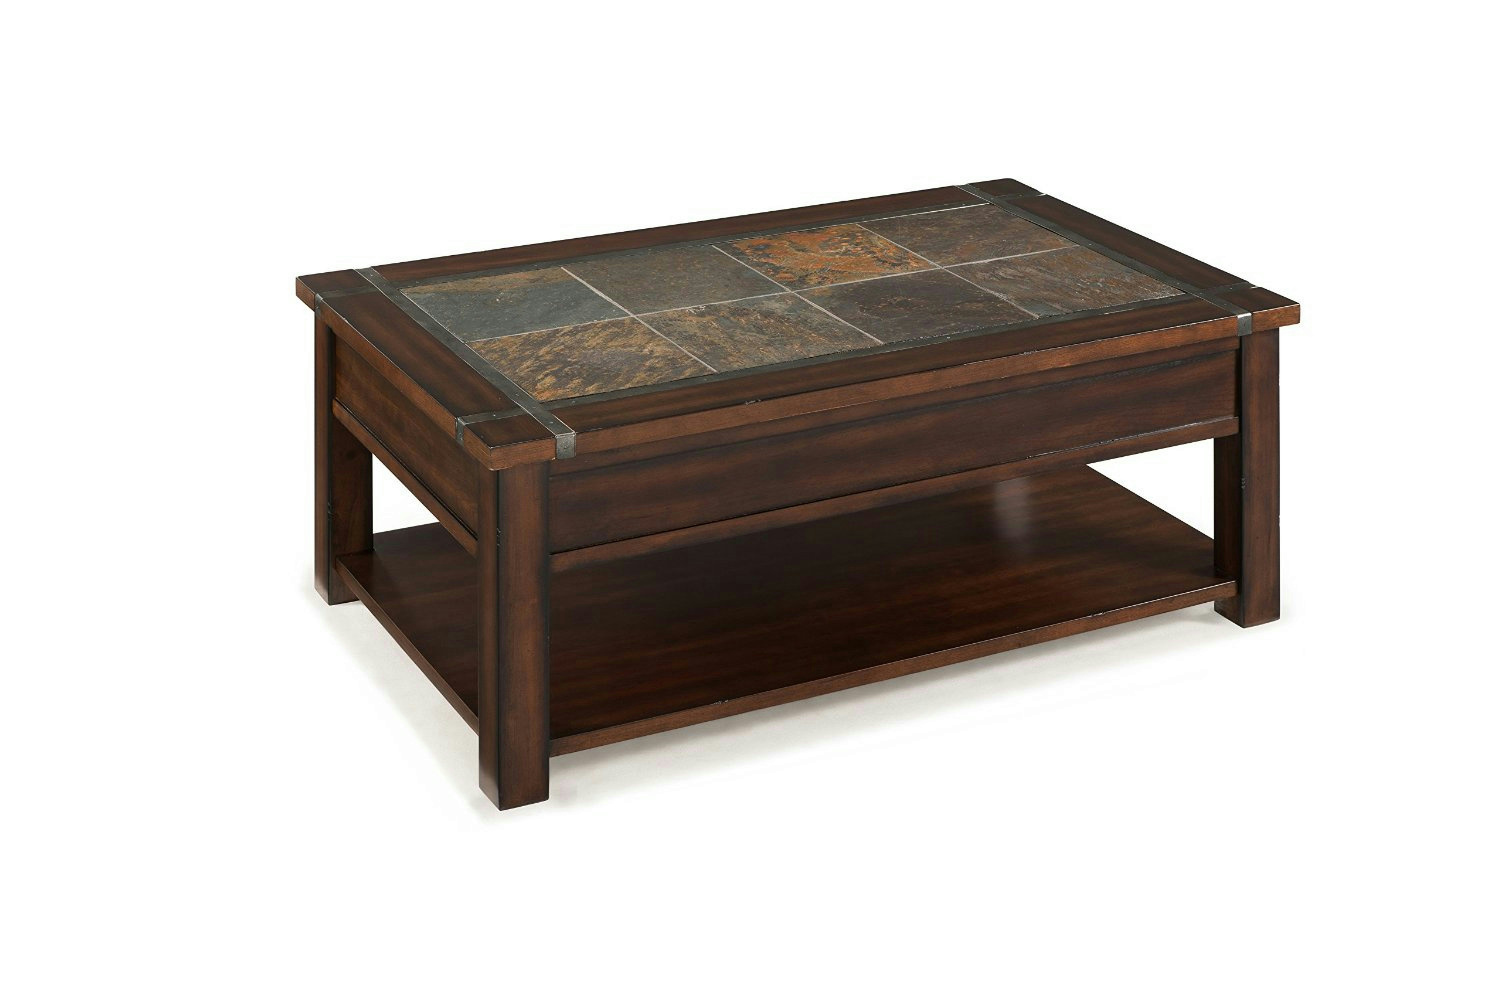 Magnussen t2615 roanoke rectangular lift top cocktail table with casters ebay Coffee tables with casters